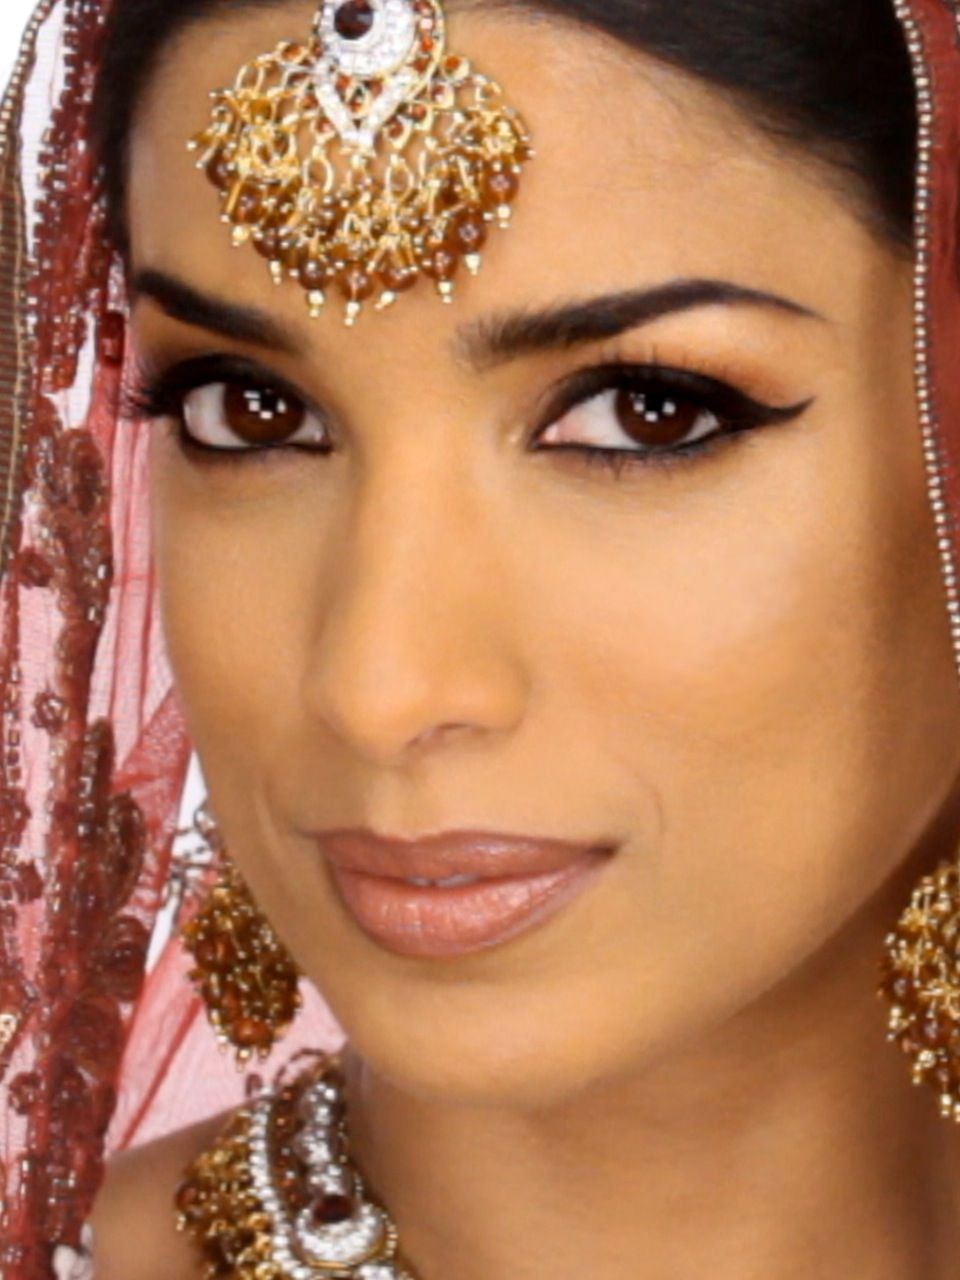 Video Makeup Tutorials: 100 Years Of Bollywood Makeup & Beauty On Pinterest